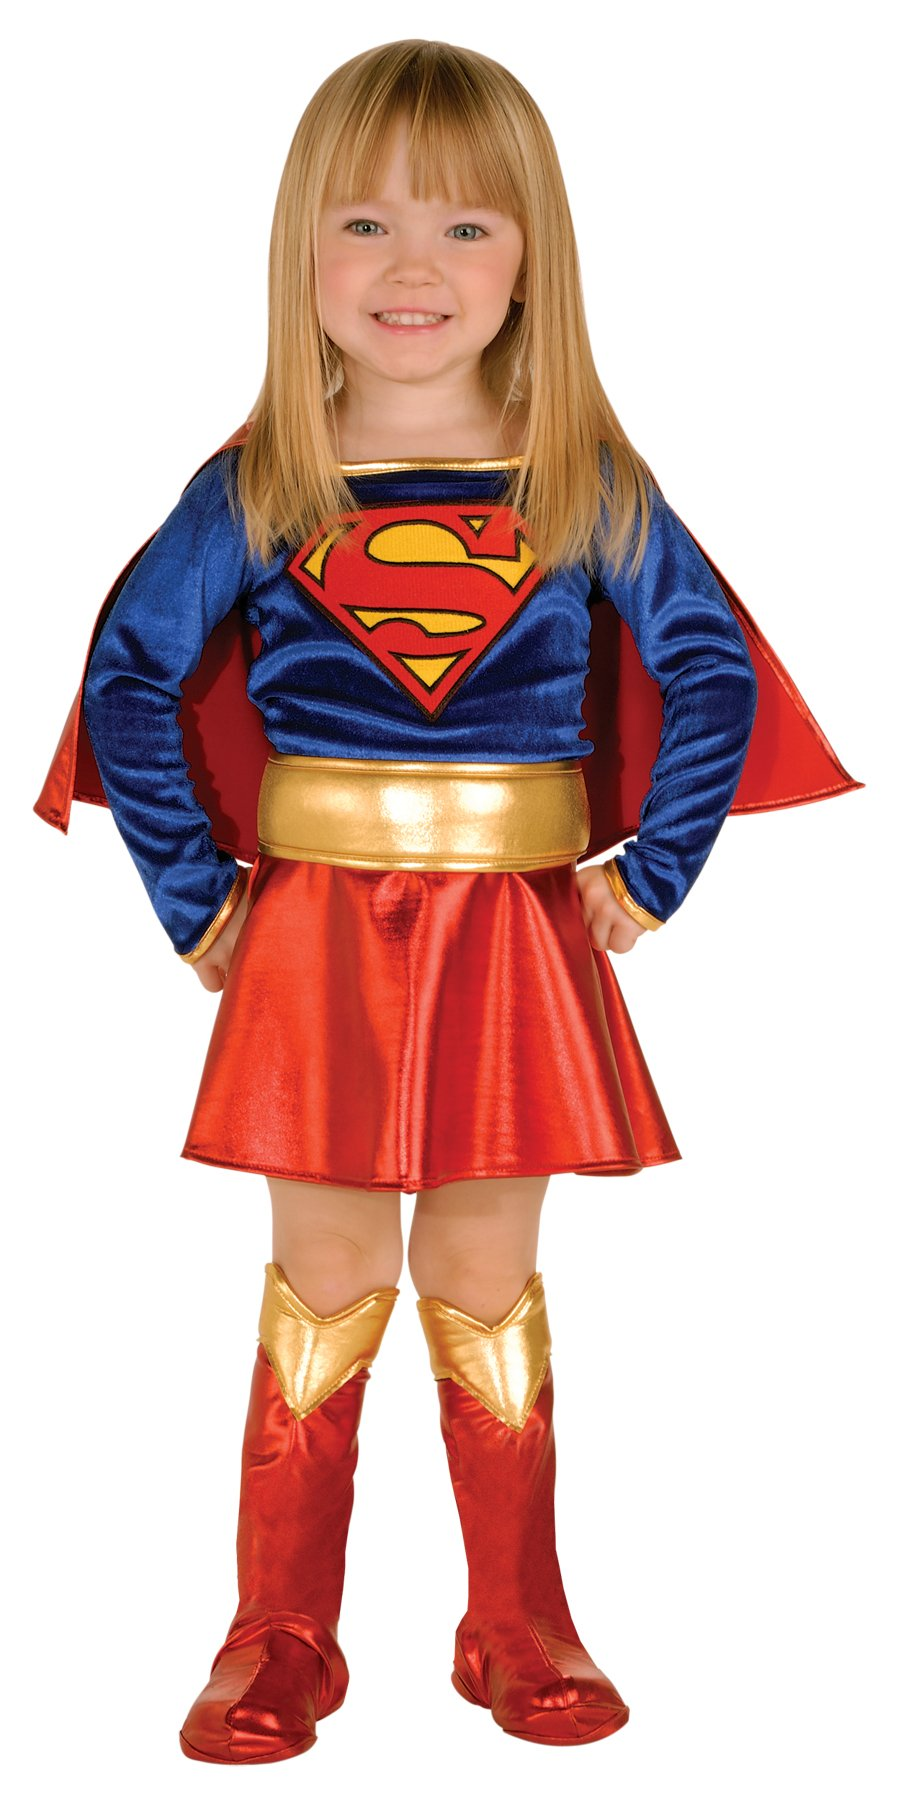 - 71jewXlJBPL - Dc Comics Supergirl Deluxe Outfit Movie Theme Toddler Halloween Costume